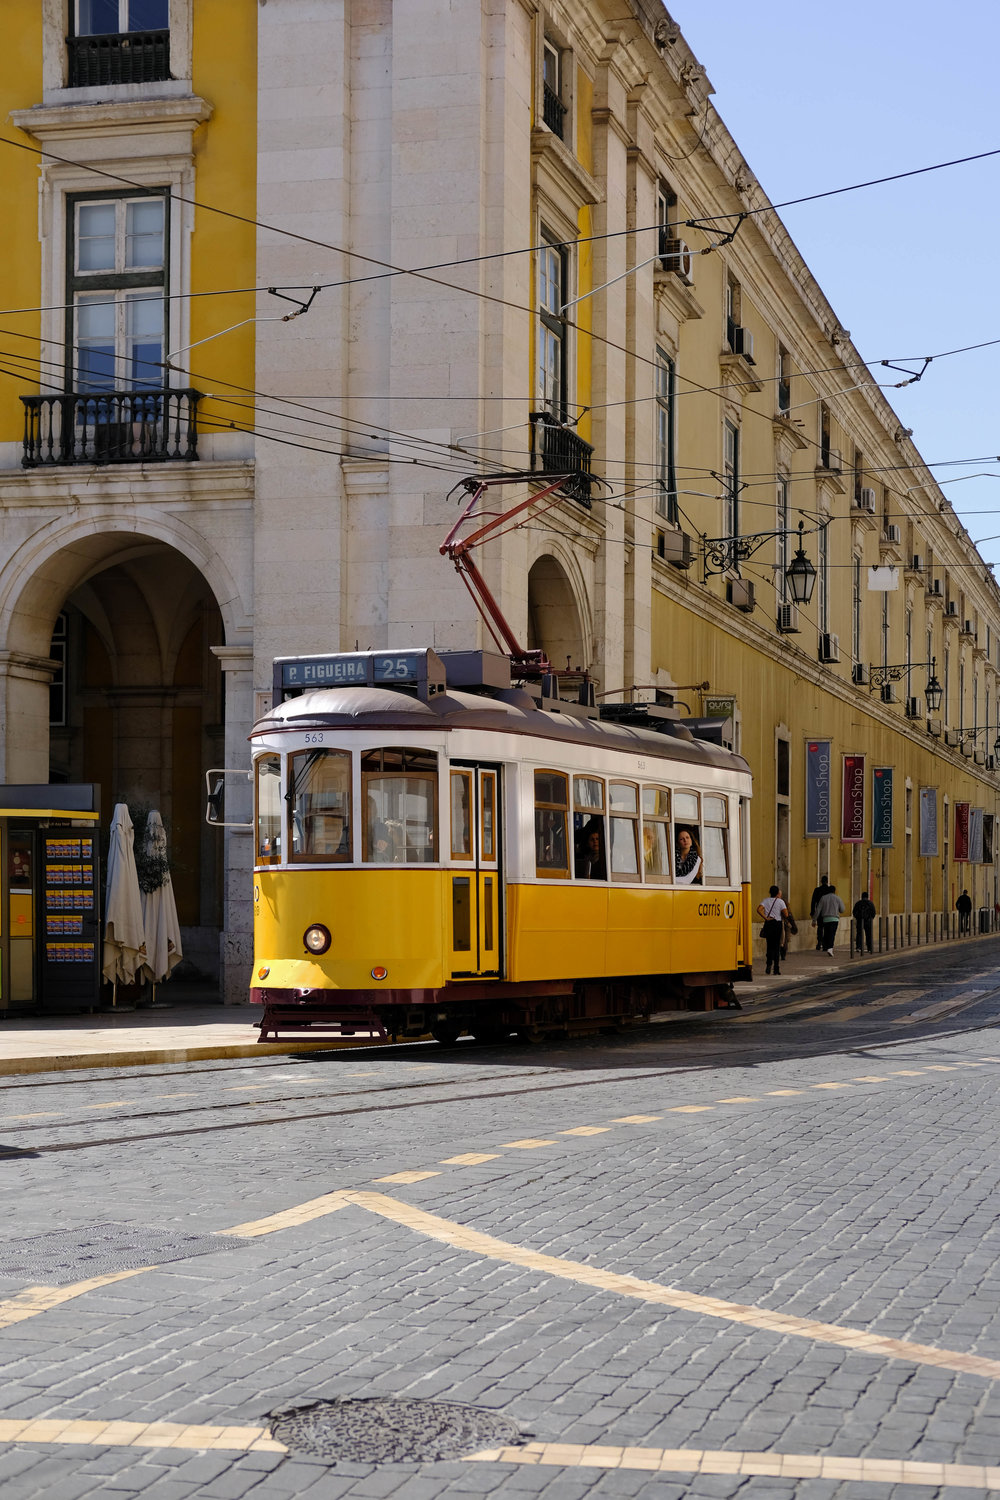 "<p style=""font-family:brandon-grotesque;font-weight:500; font-size:11px; text-center:left; color:light grey;letter-spacing: 1px"">MARCH 5, 2017 • LIKE SUNSHINE • 📍 Lisbon, Portugal</p>"